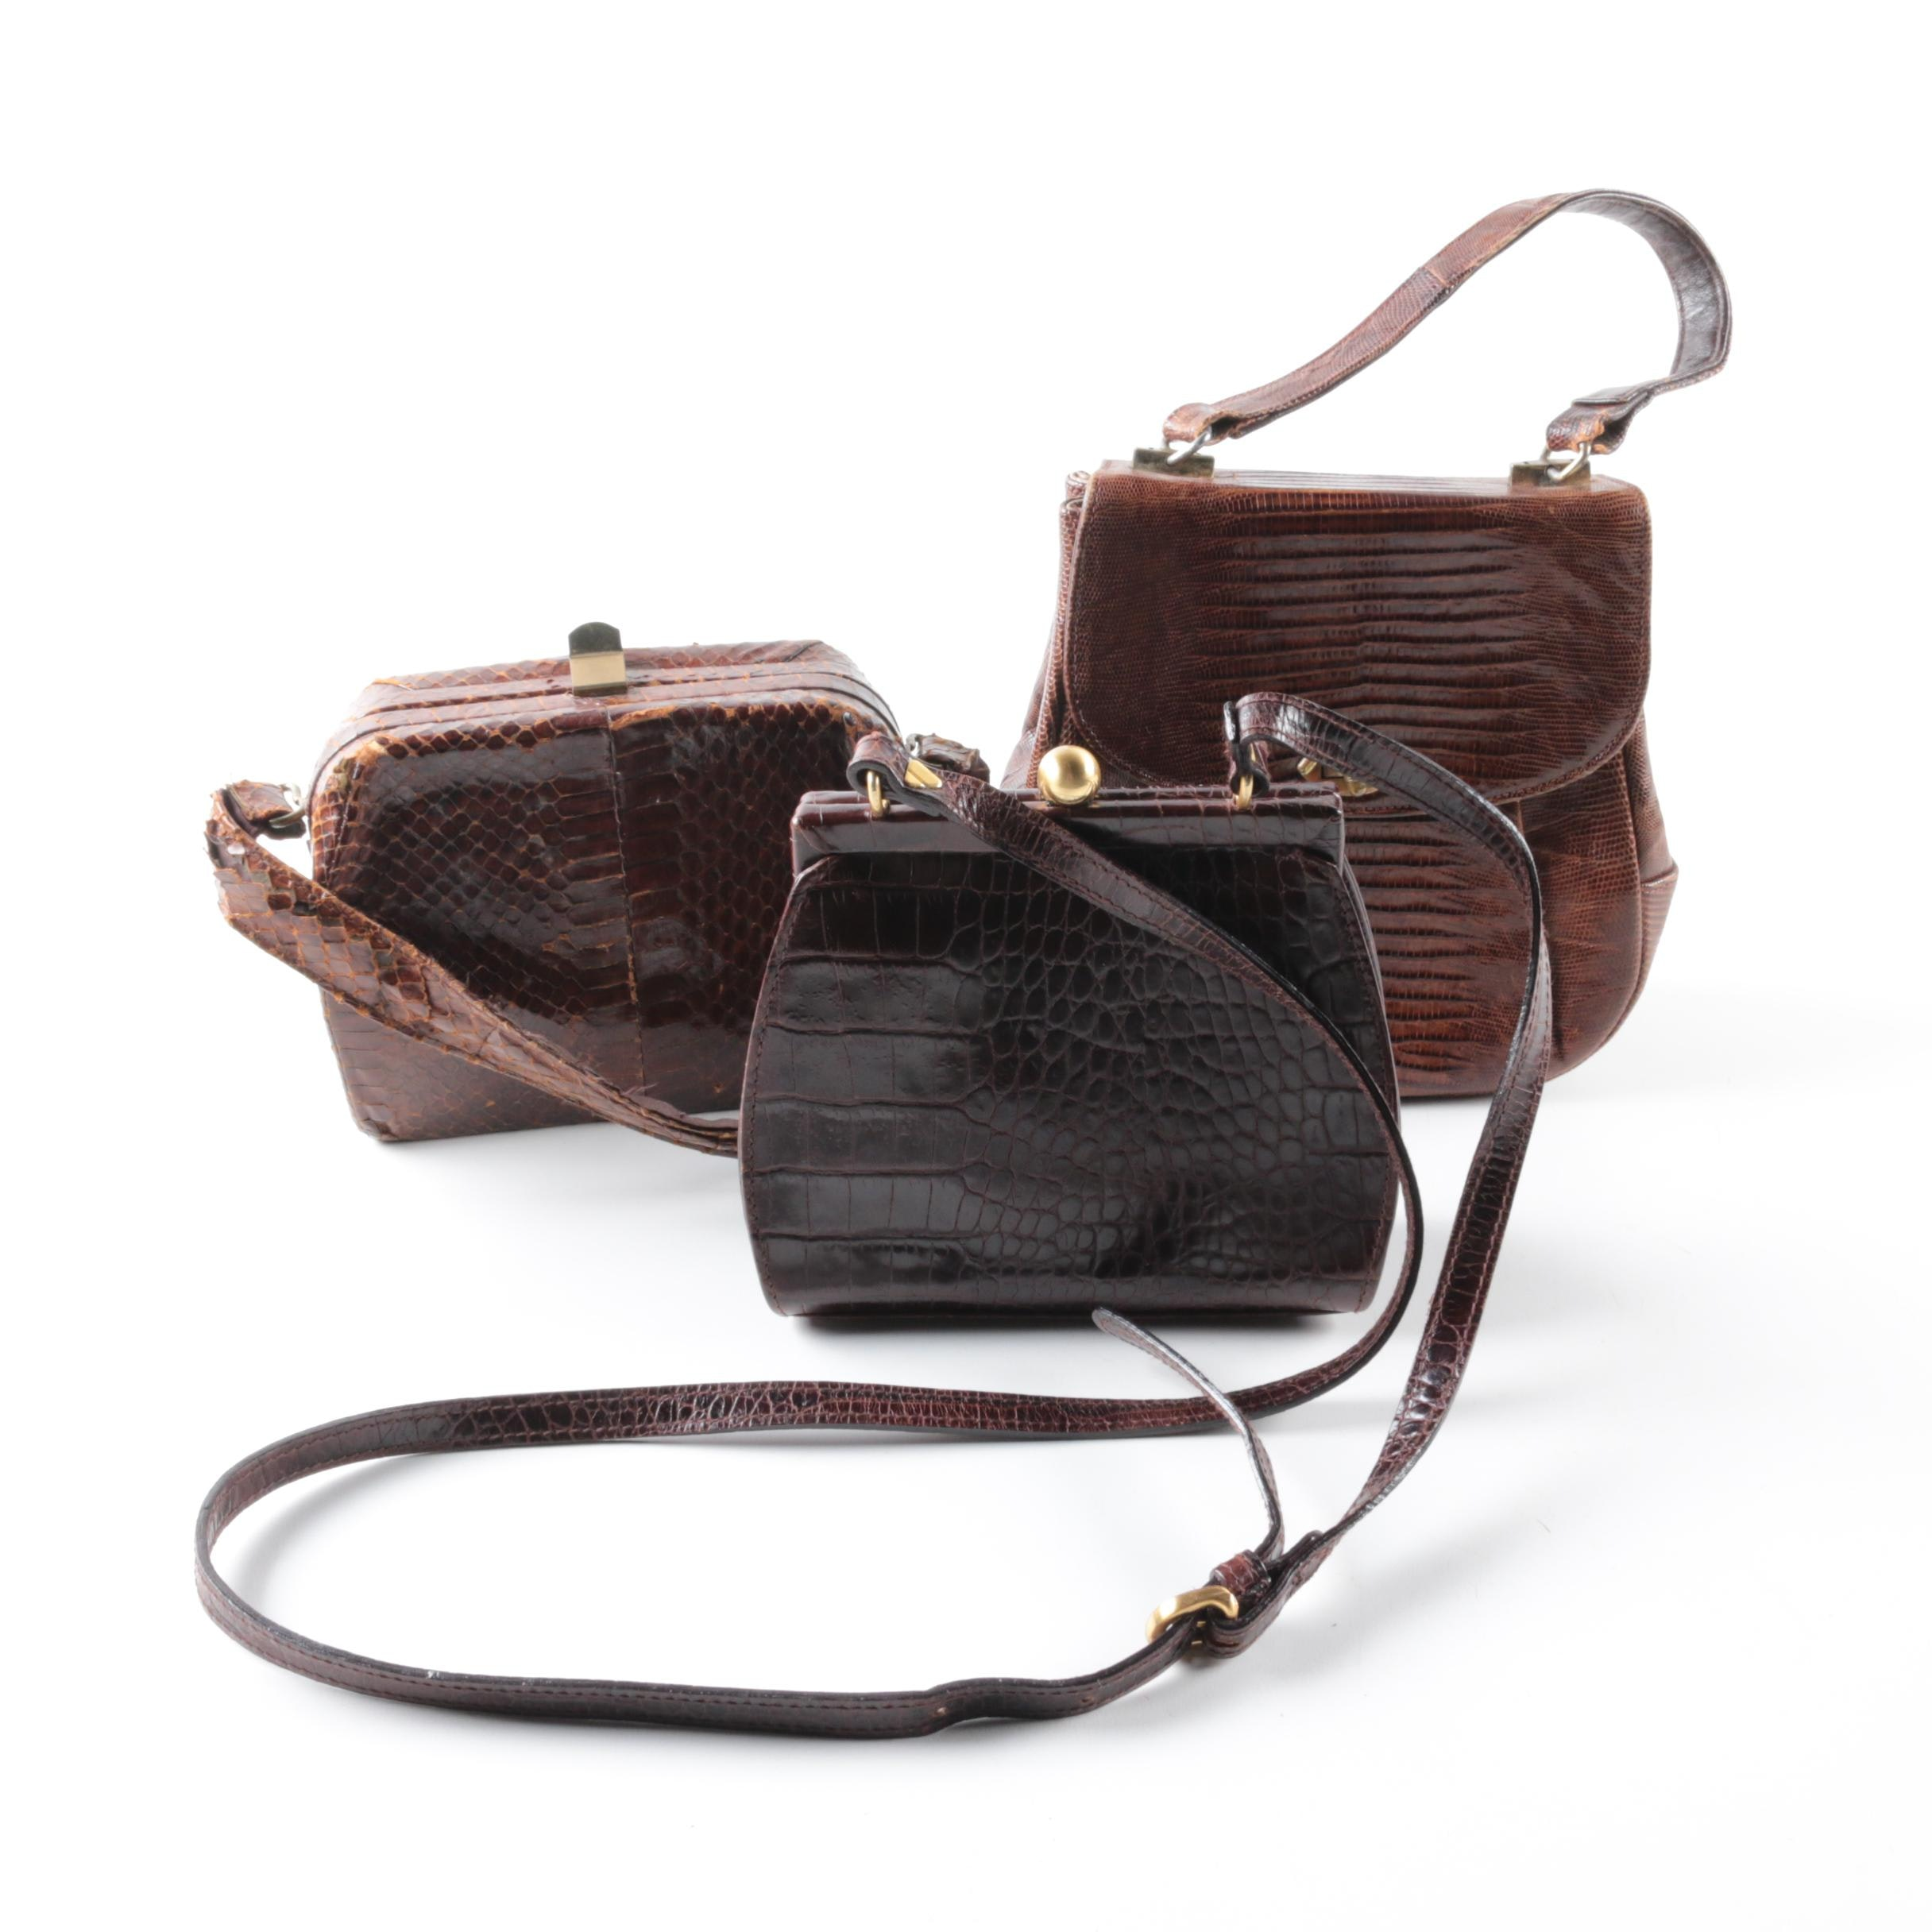 Vintage Leather and Reptile Skin Handbags